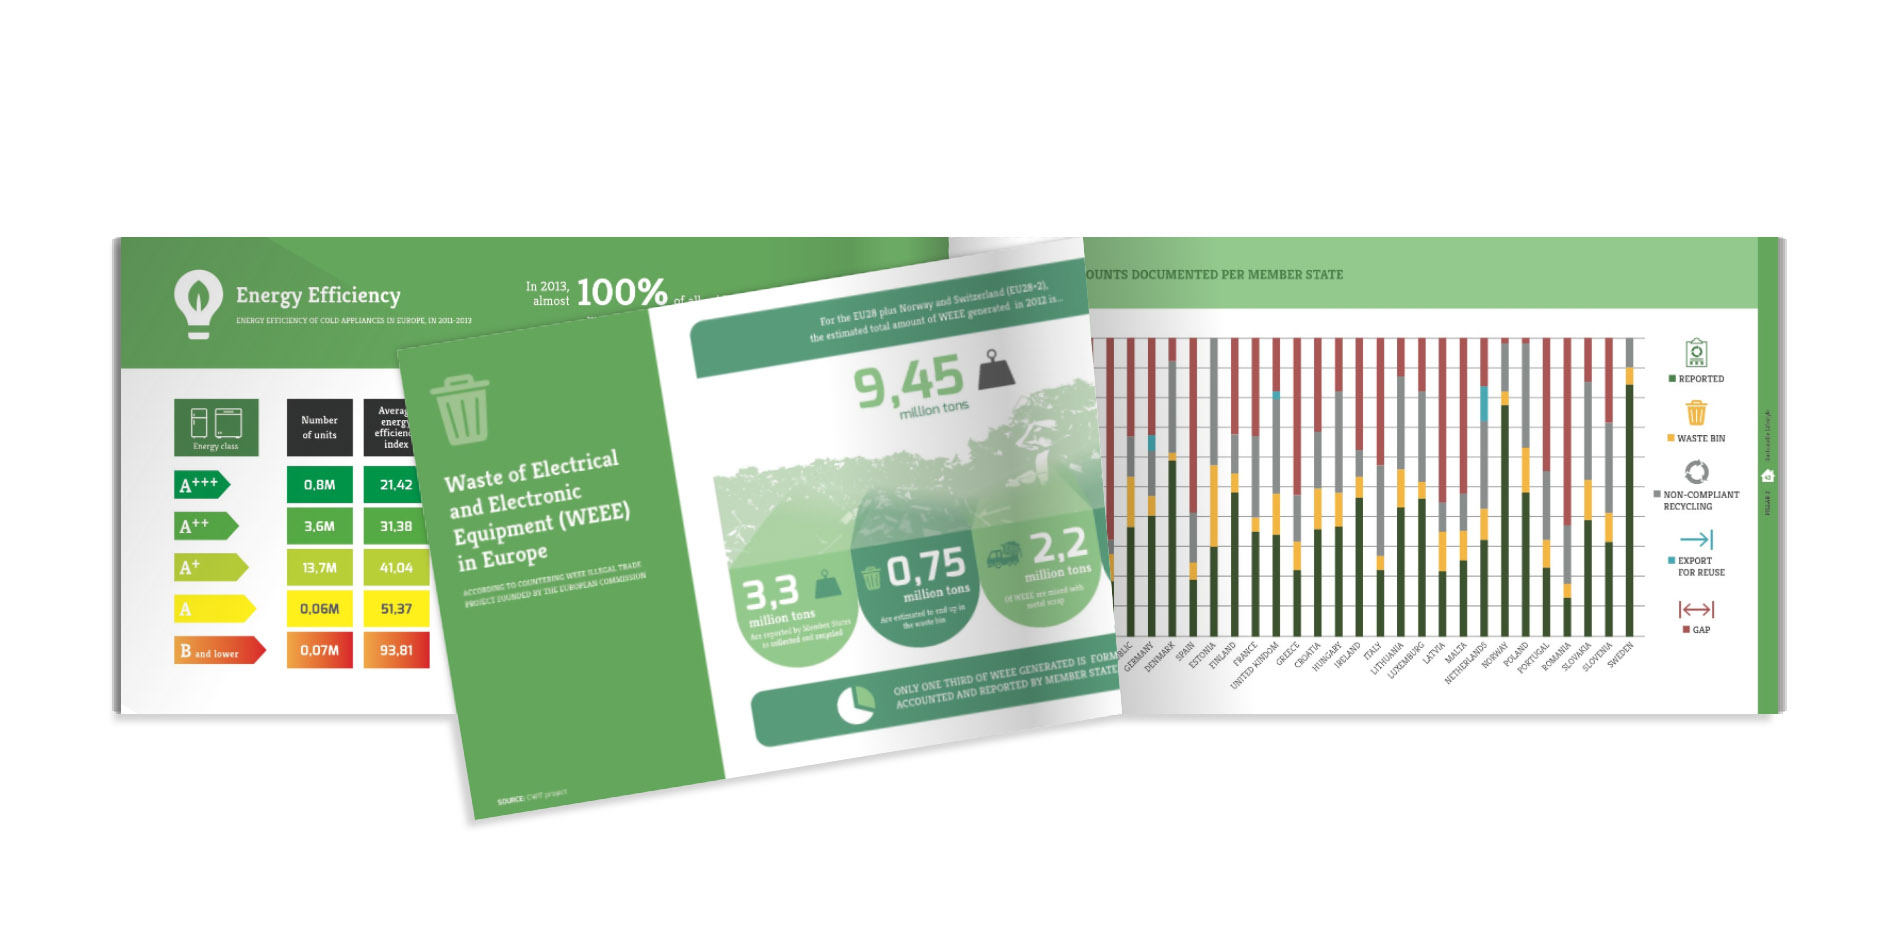 ceced_annual_report_design_infographic_4